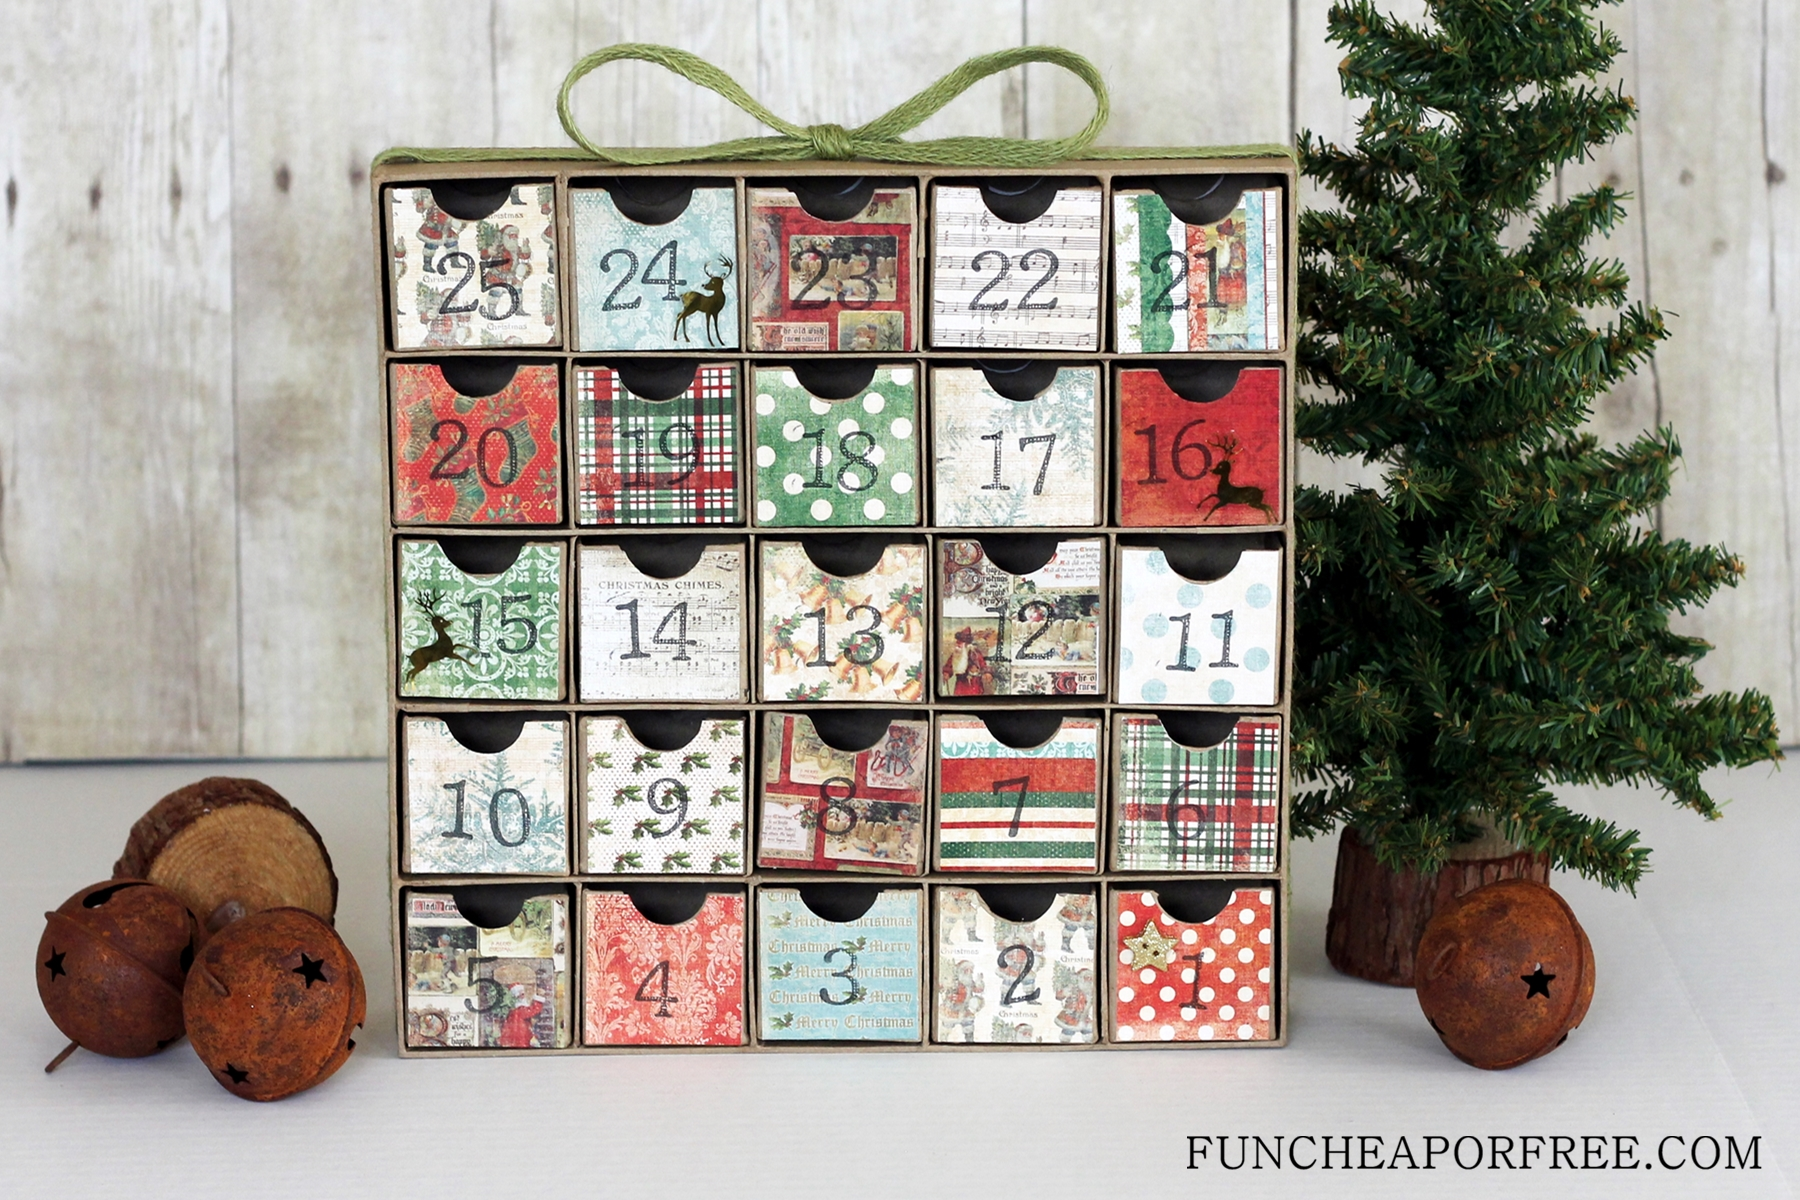 Diy advent calendar all you need is scrapbook paper How to build a wooden advent calendar